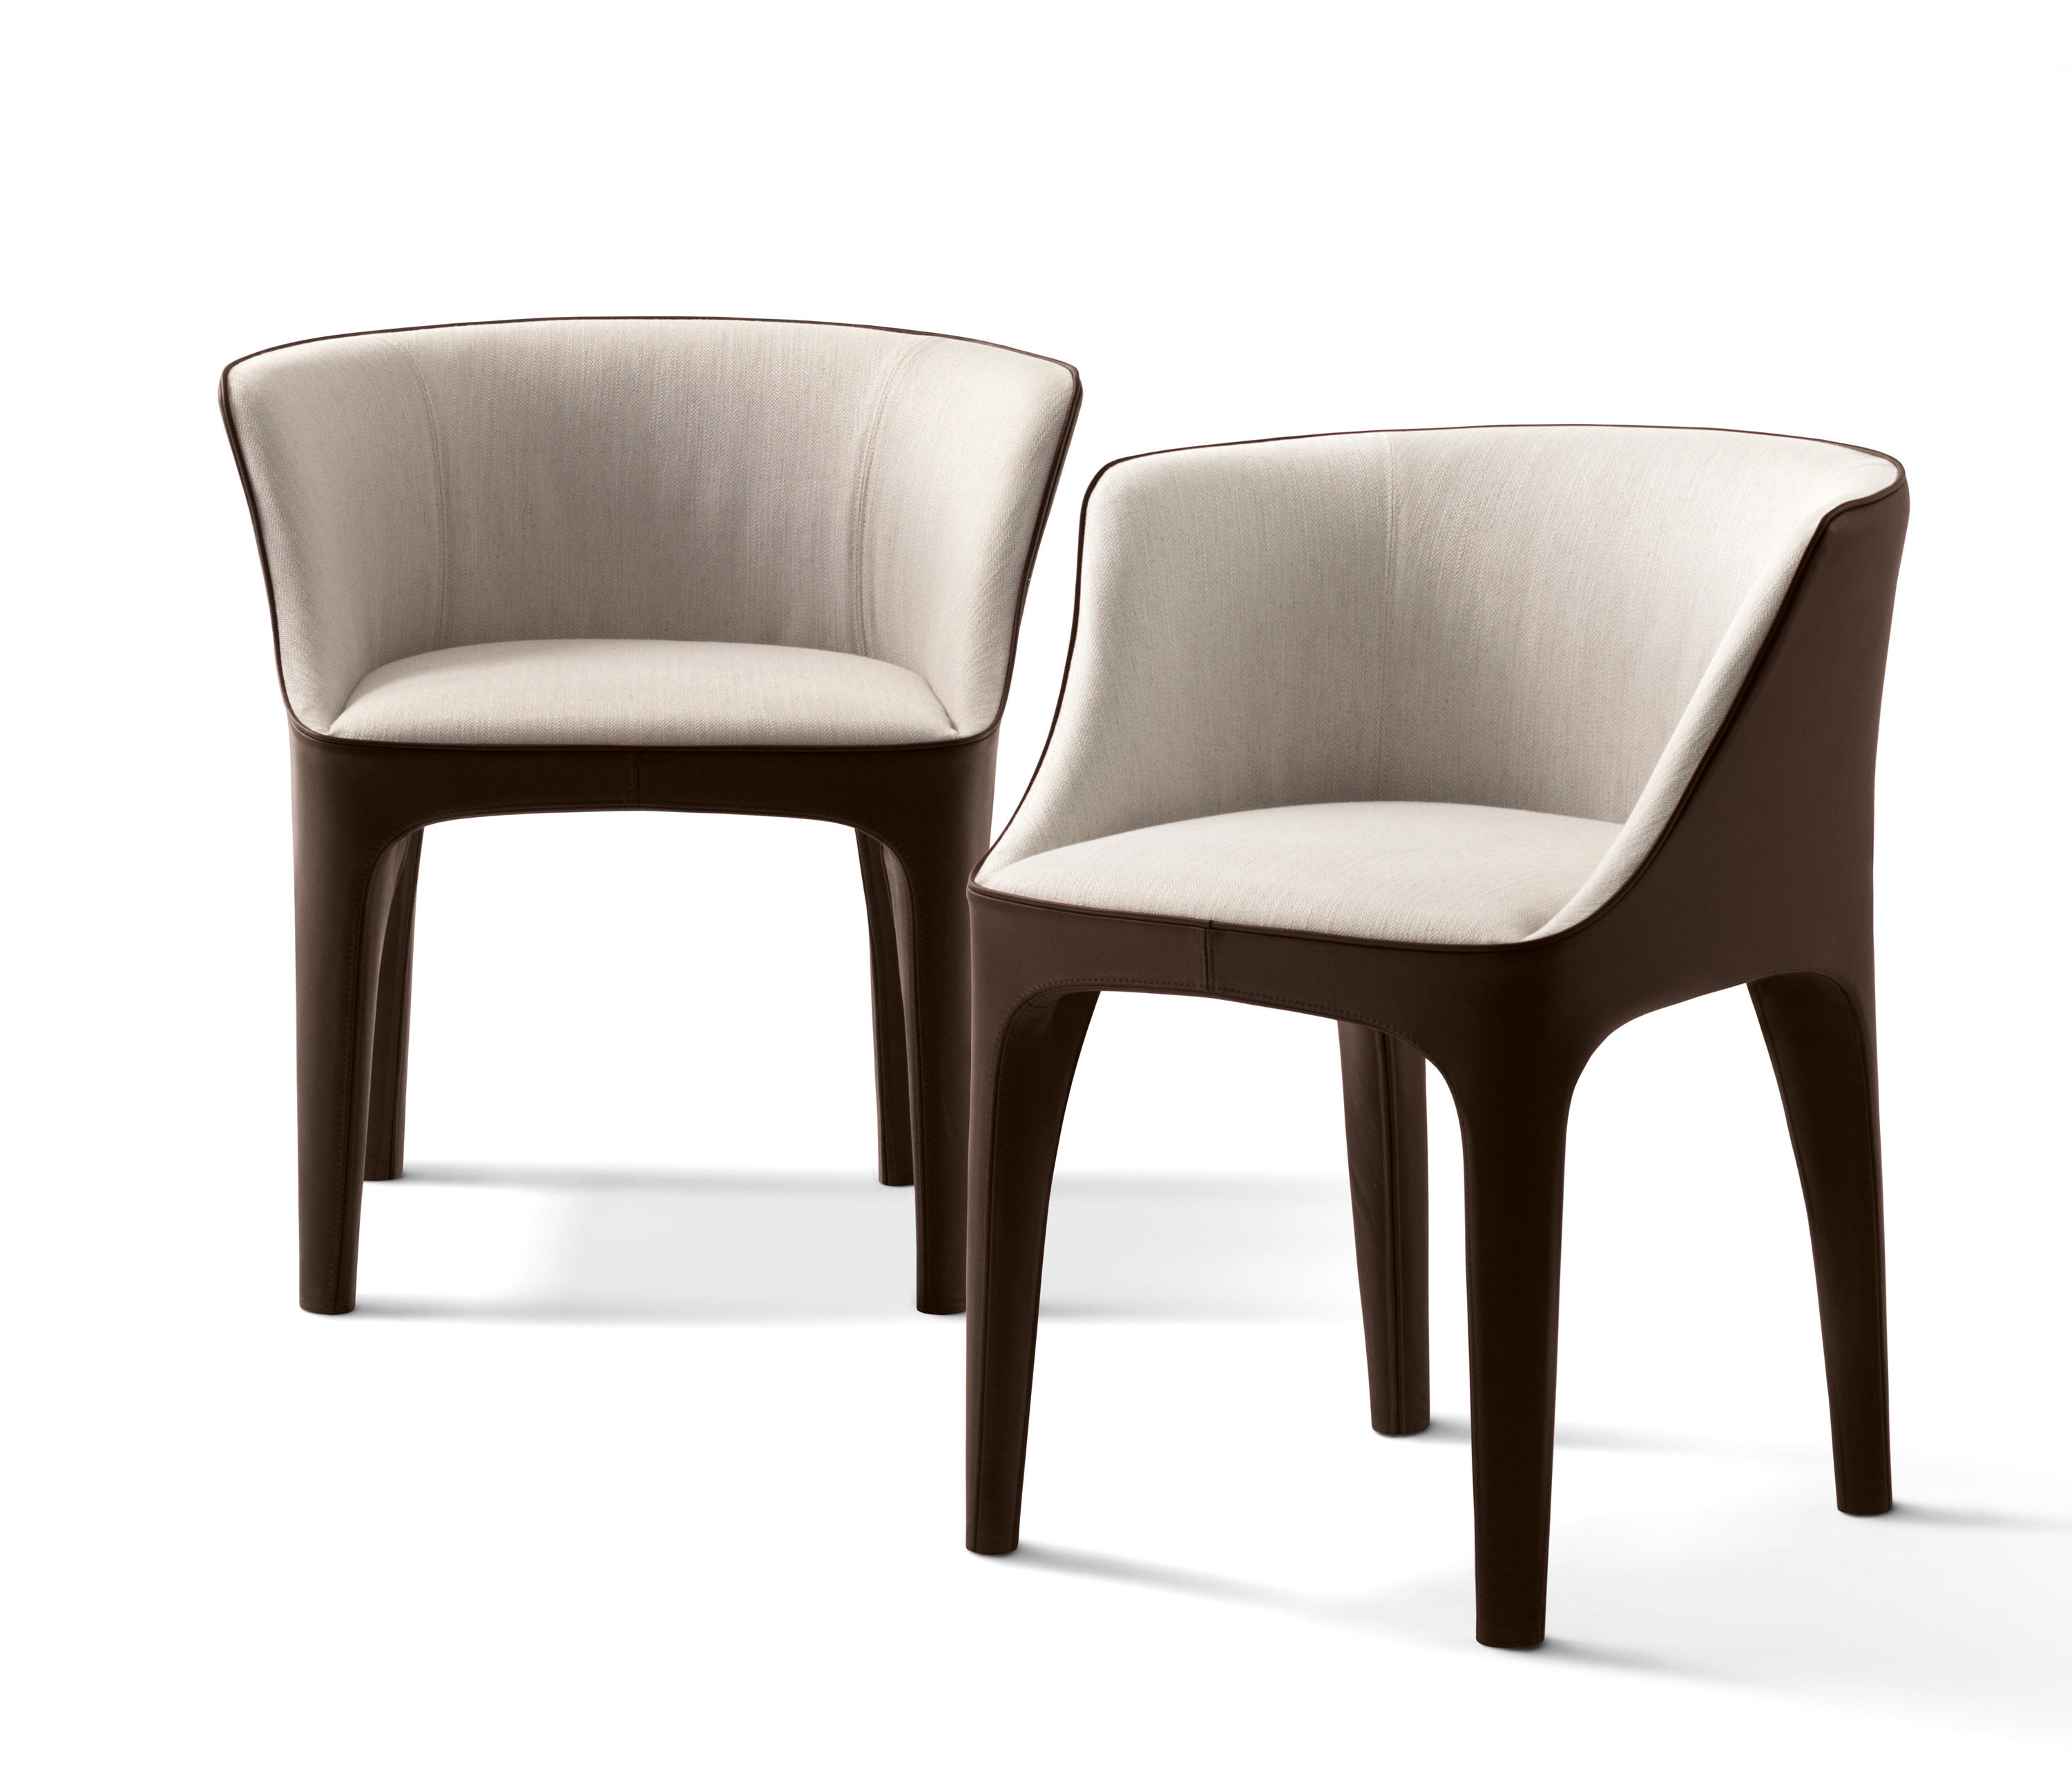 small arm chair big and tall leather office chairs diana armchair from giorgetti architonic by